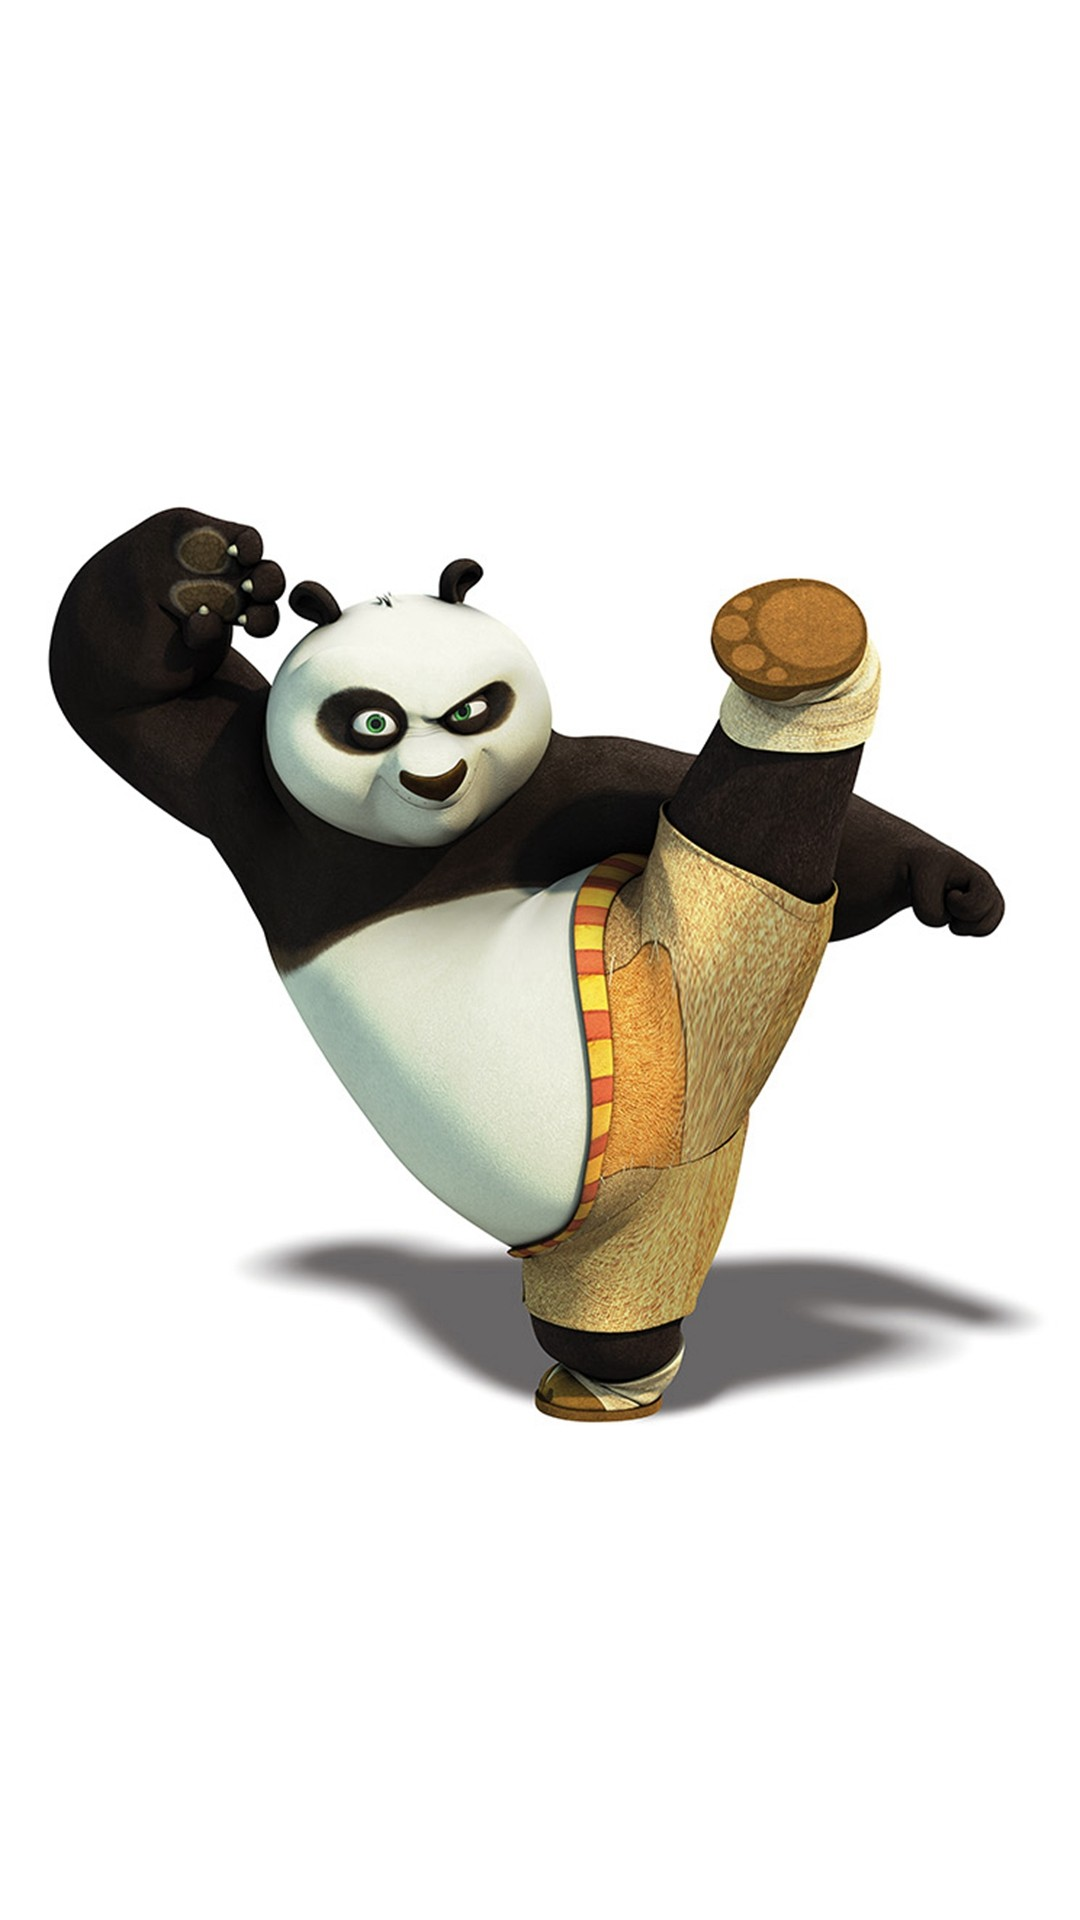 1080x1920 Kungfu Panda Dreamworks Animal Kick Cute Anime iPhone 8 wallpaper